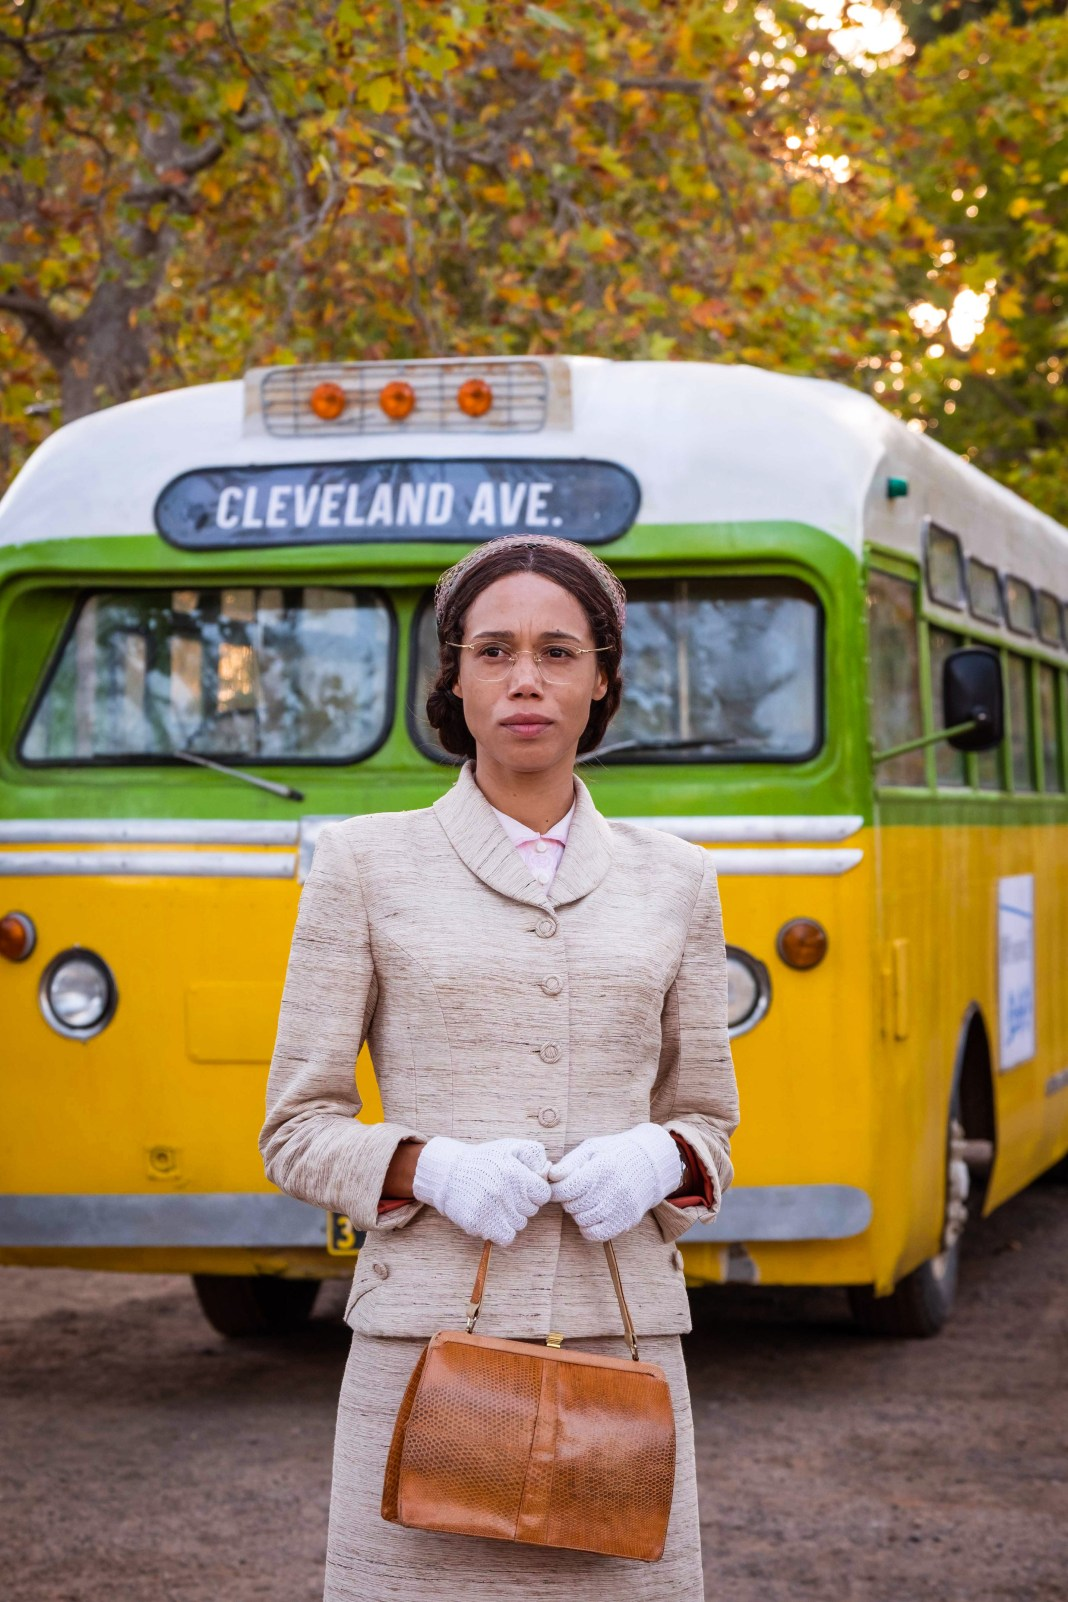 Doctor Who - S11 - Ep 3 - Rosa - Rosa Parks (VINETTE ROBINSON) - (C) BBC / BBC Studios - Photographer: Coco Van Oppens